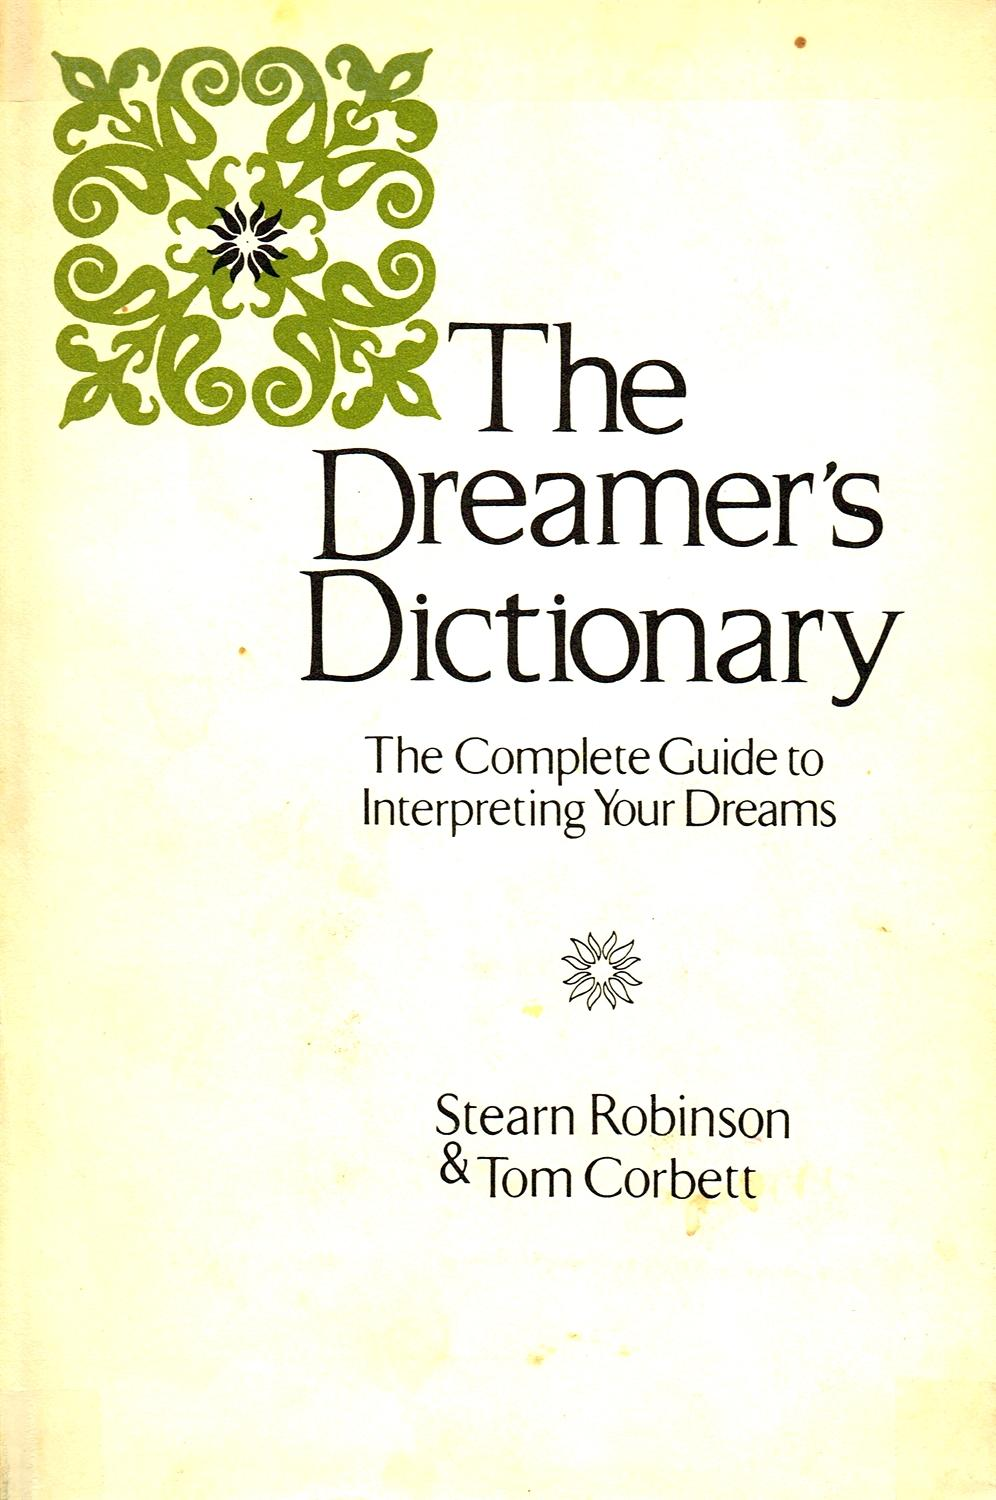 The dreamers dictionary the complete guide to interpreting your the dreamers dictionary the complete guide to interpreting your dreams by stearn robinson and tom corbett abebooks buycottarizona Images